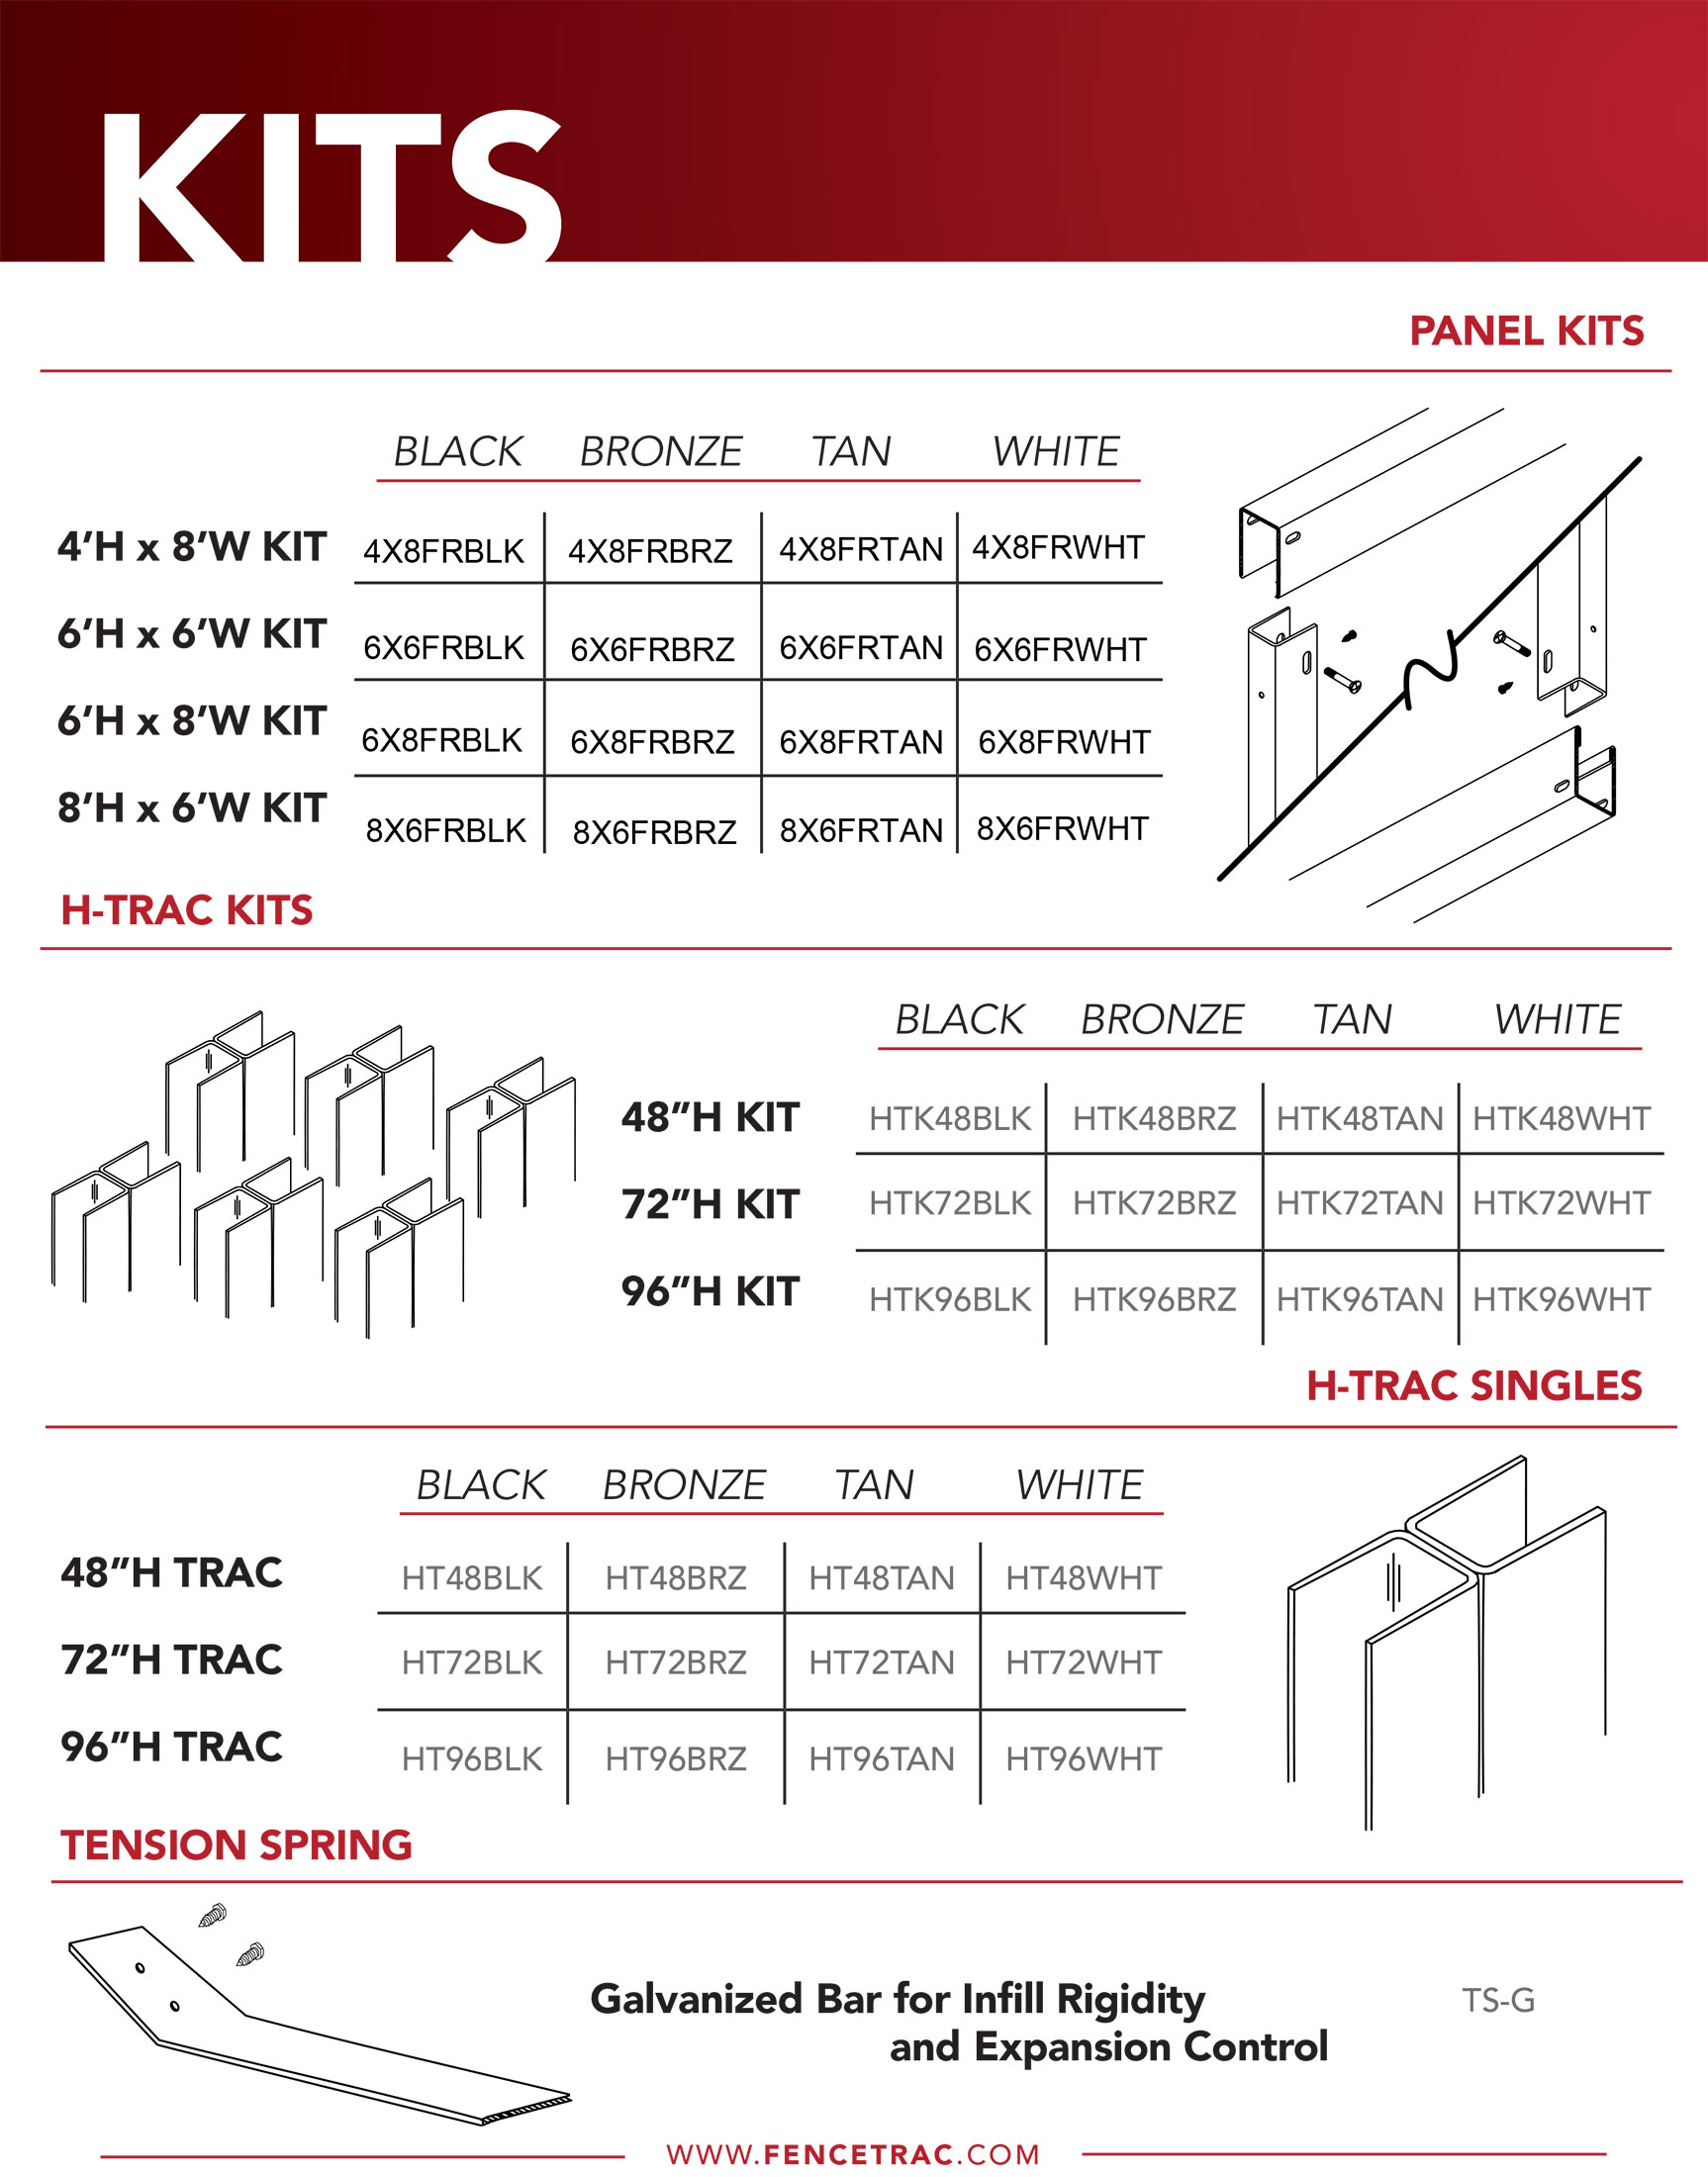 FenceTrac Kit Specs